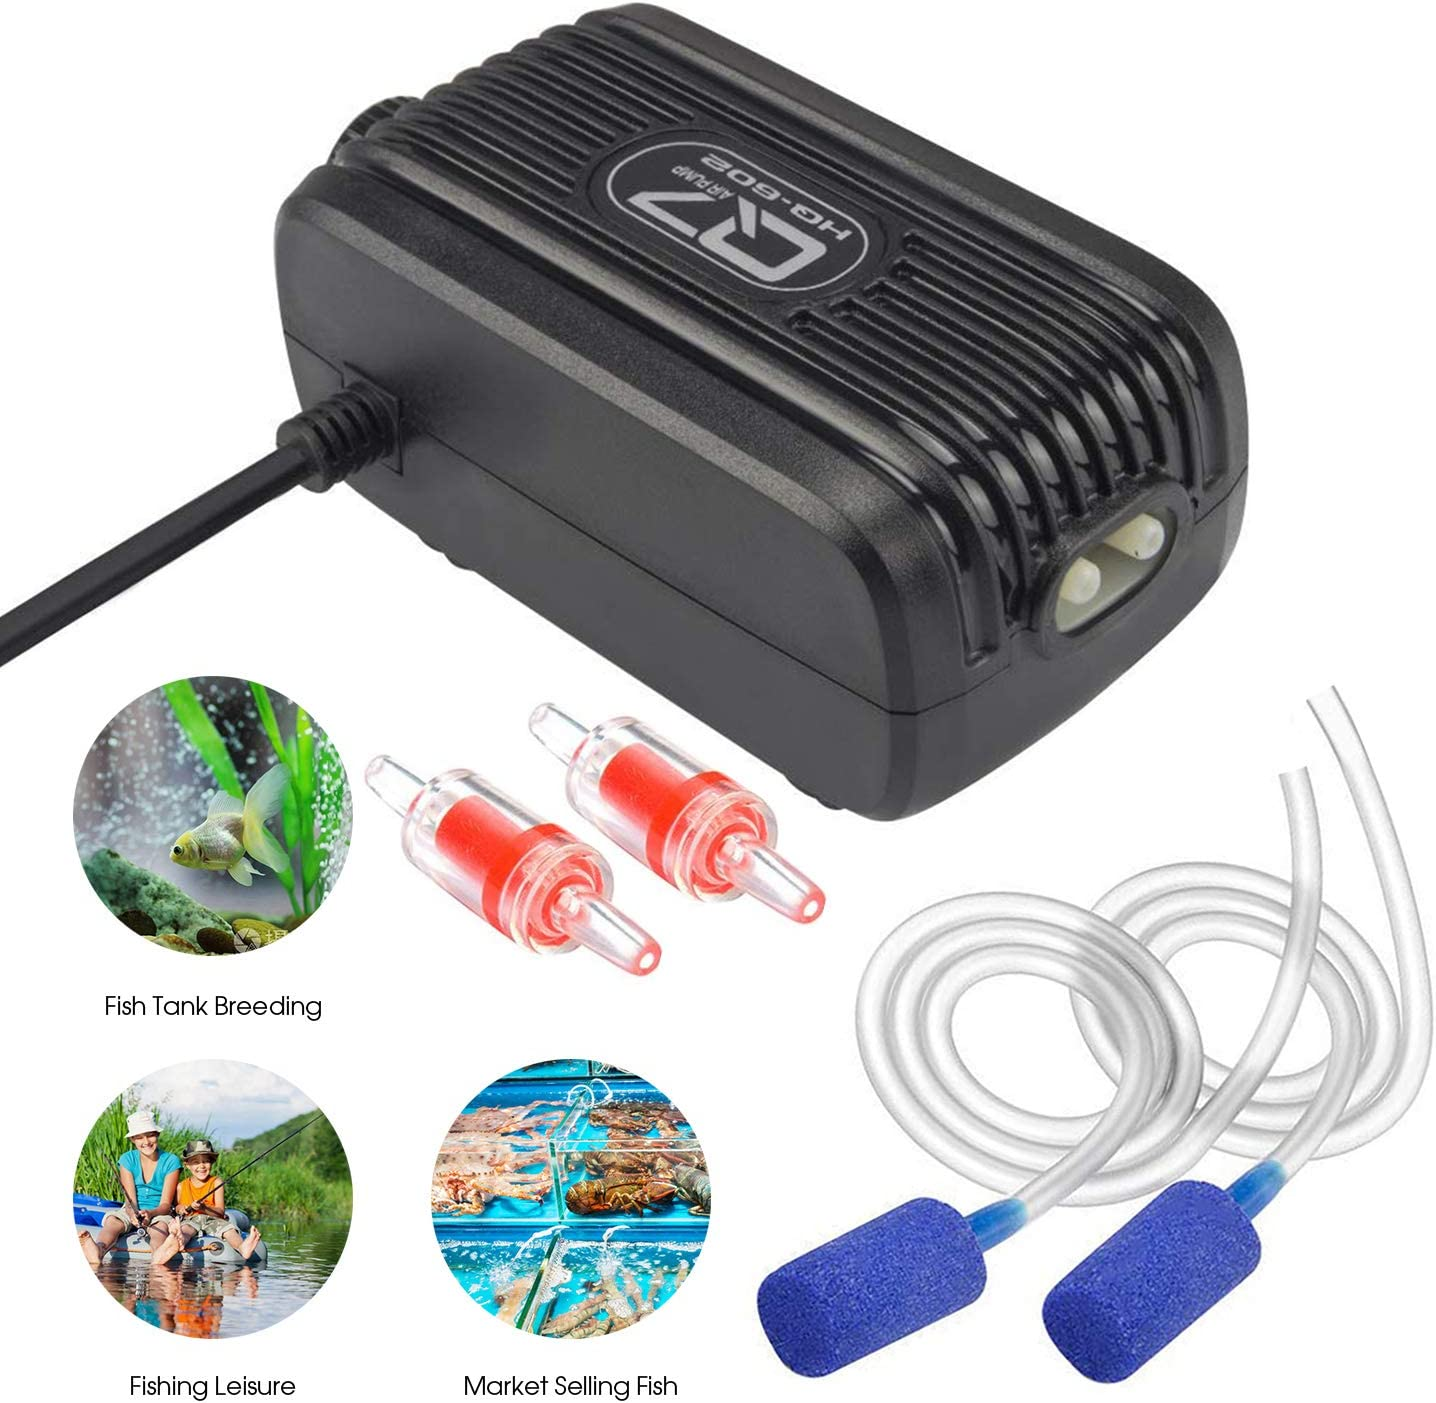 Rifny Aquarium Air Pump, Adjustable Air Pump Kit with Dual Outlet Air Valve, Fish Tank Oxygen Pump with Air Stones Silicone Tube Check Valves for 1-80 Gallon